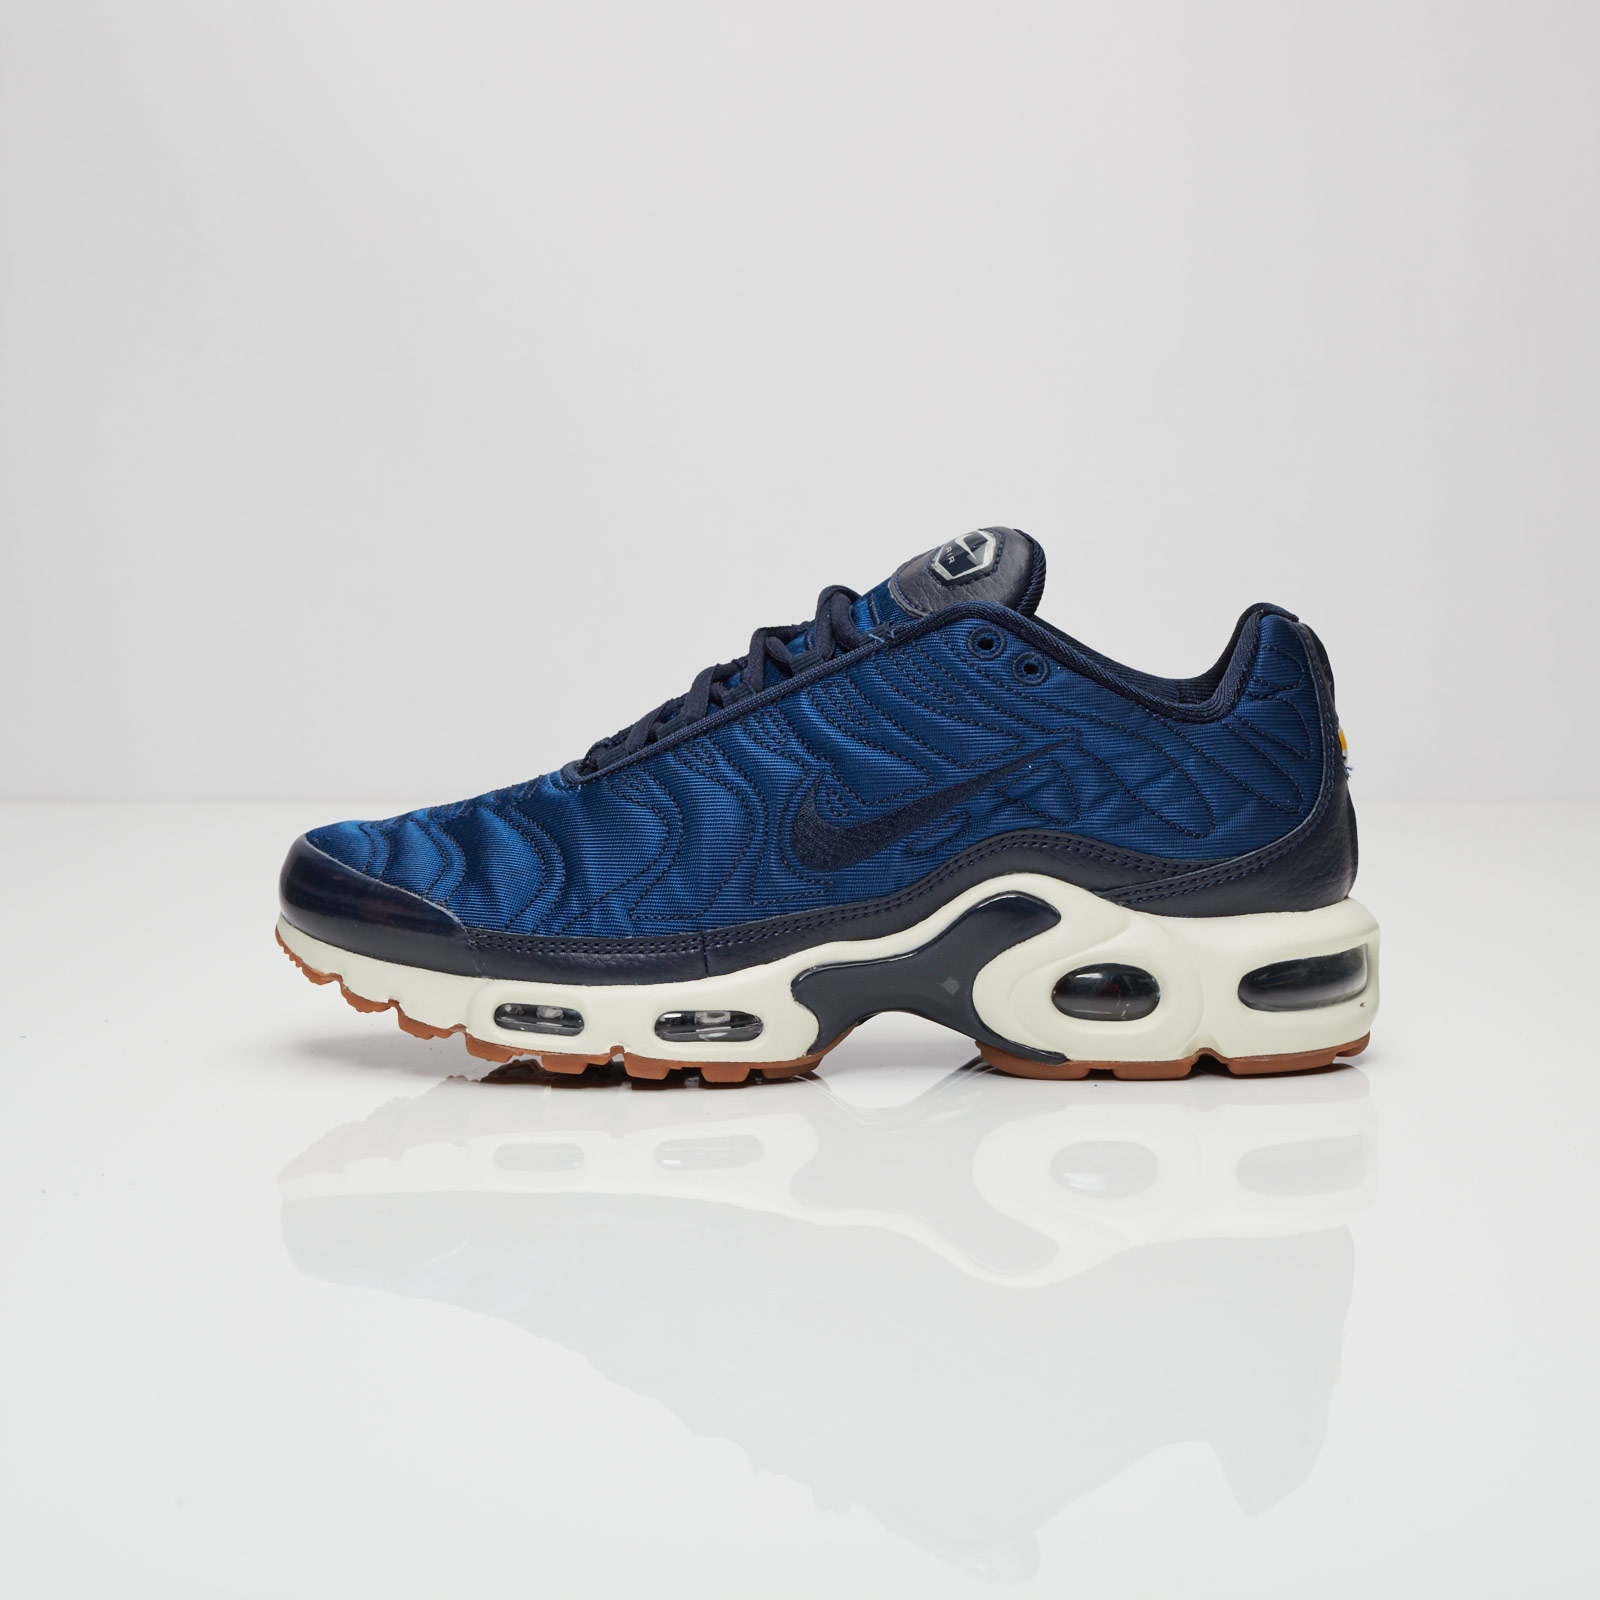 brand new a70ab 5356f Nike Wmns Air Max Plus Premium - 848891-400 - Sneakersnstuff ...